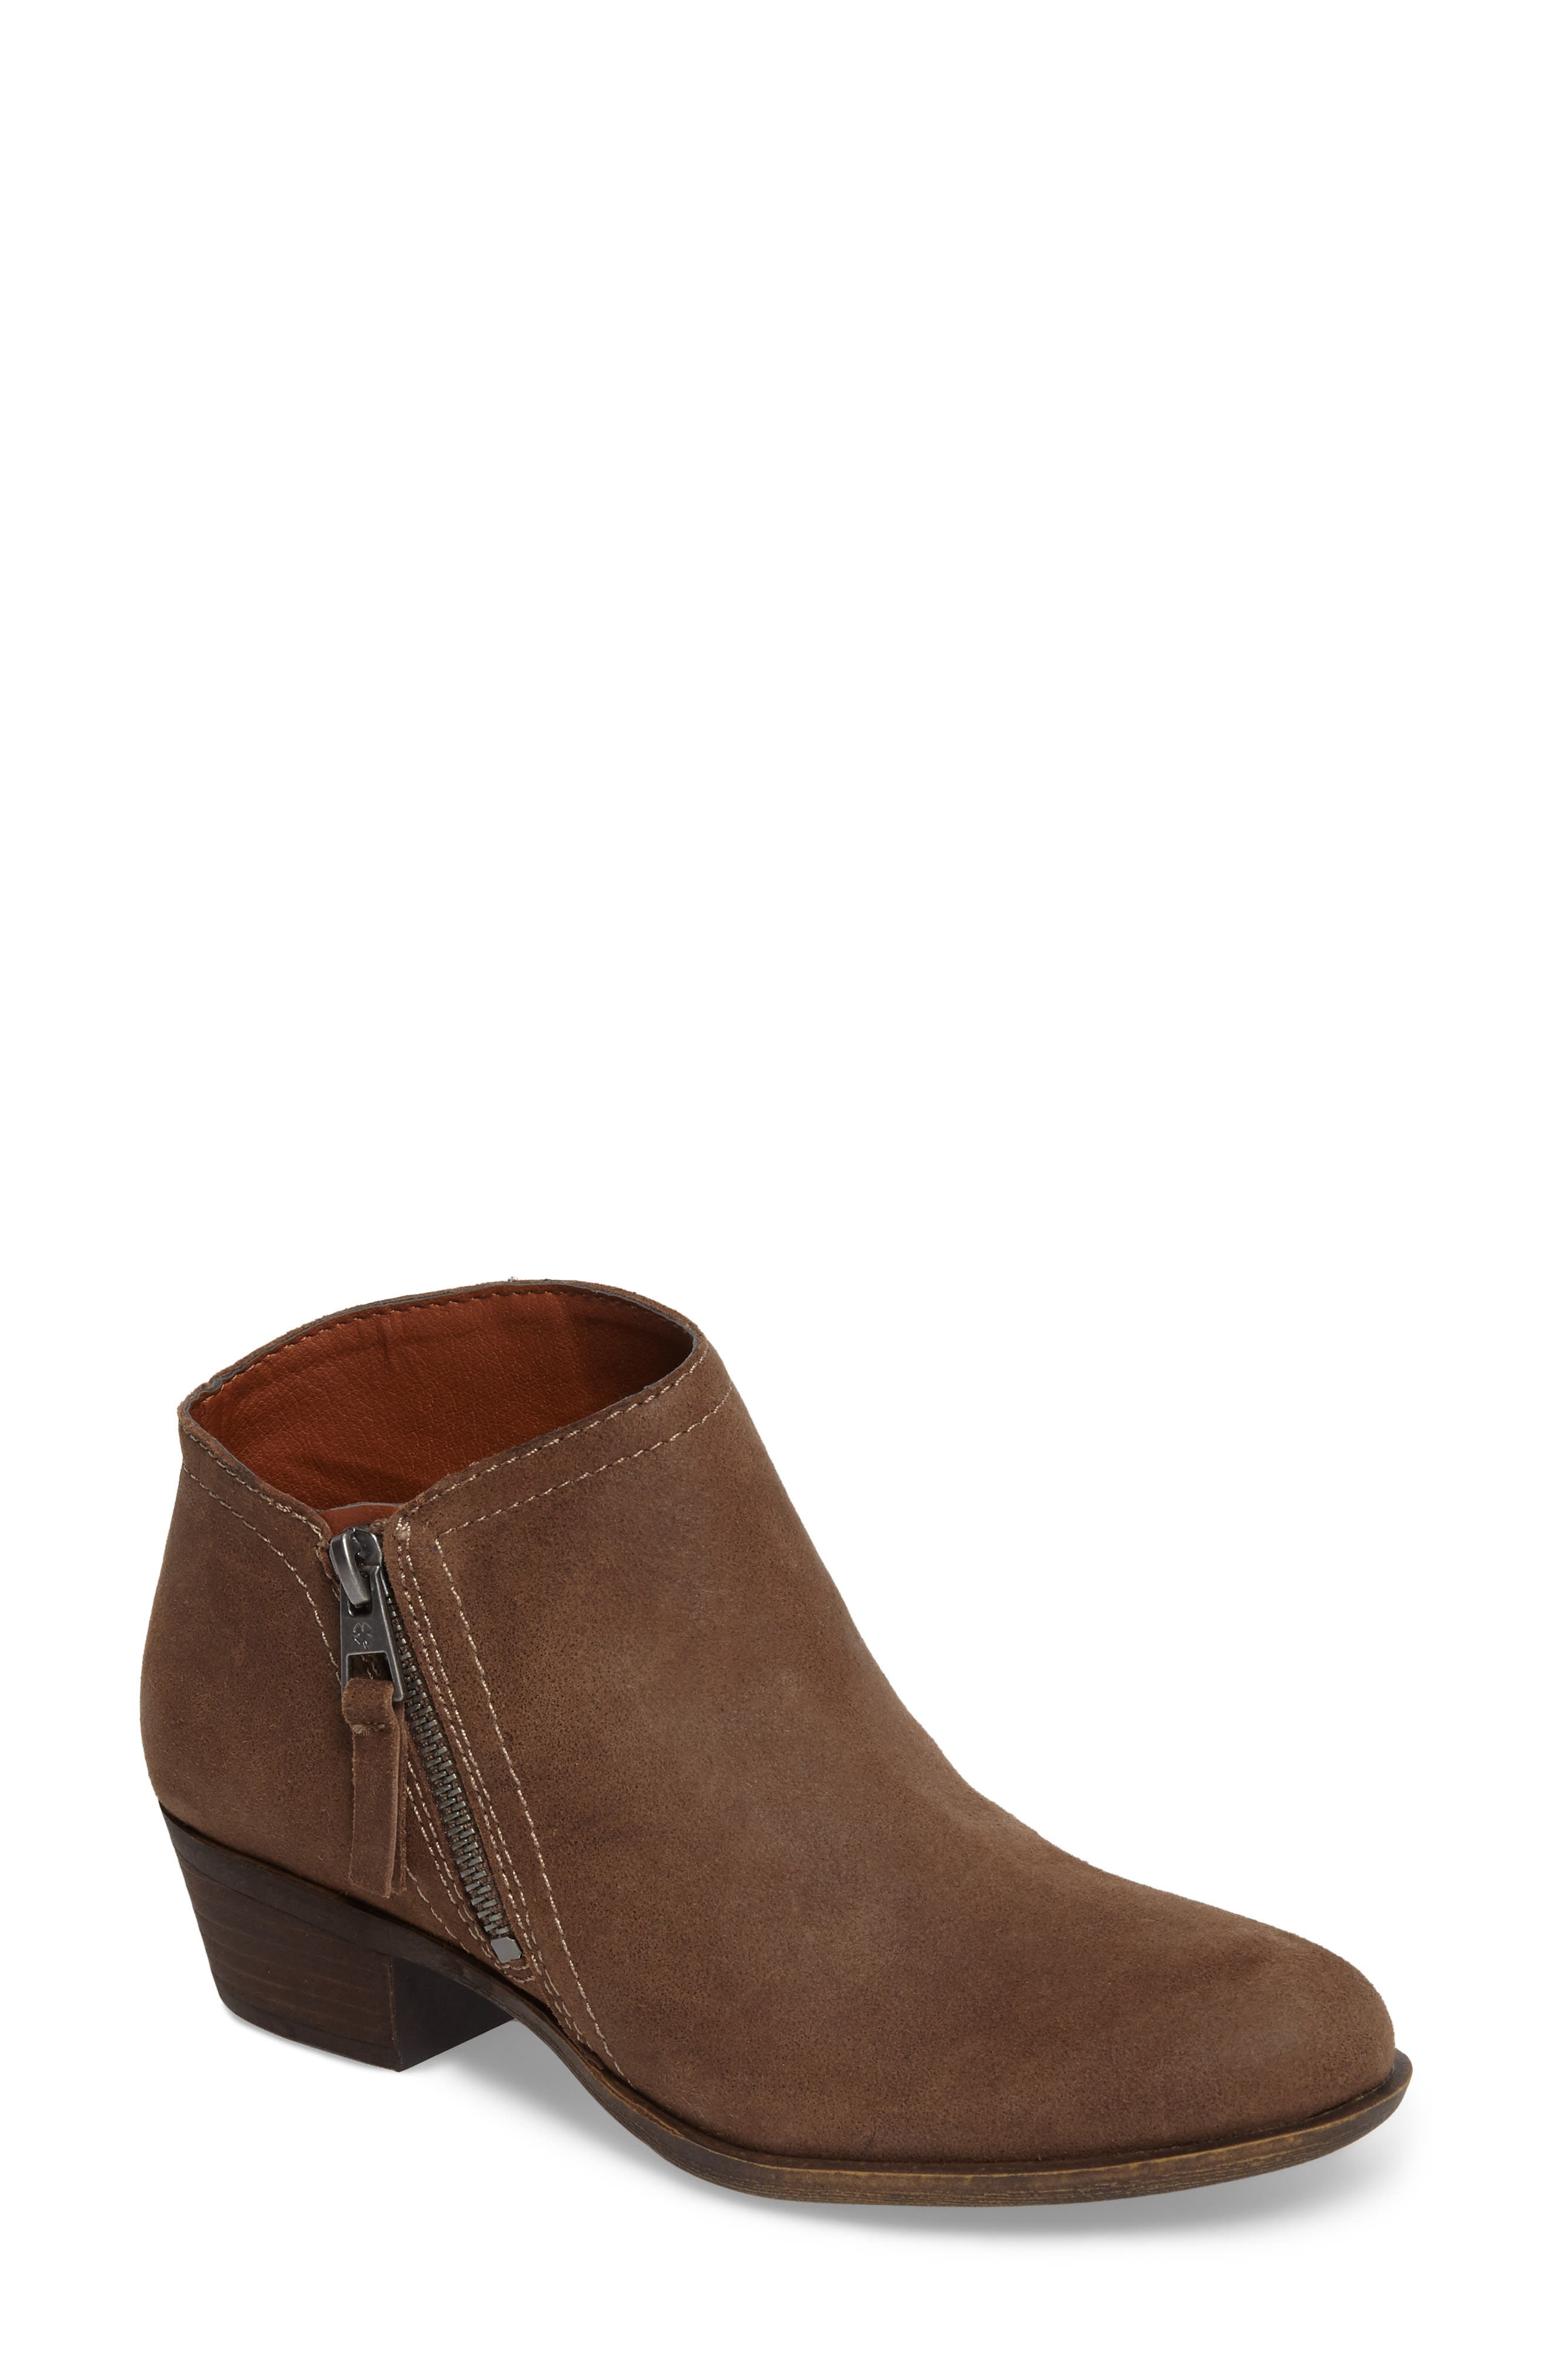 Alternate Image 1 Selected - Lucky Brand Brielley 2 Asymmetrical Bootie (Women)